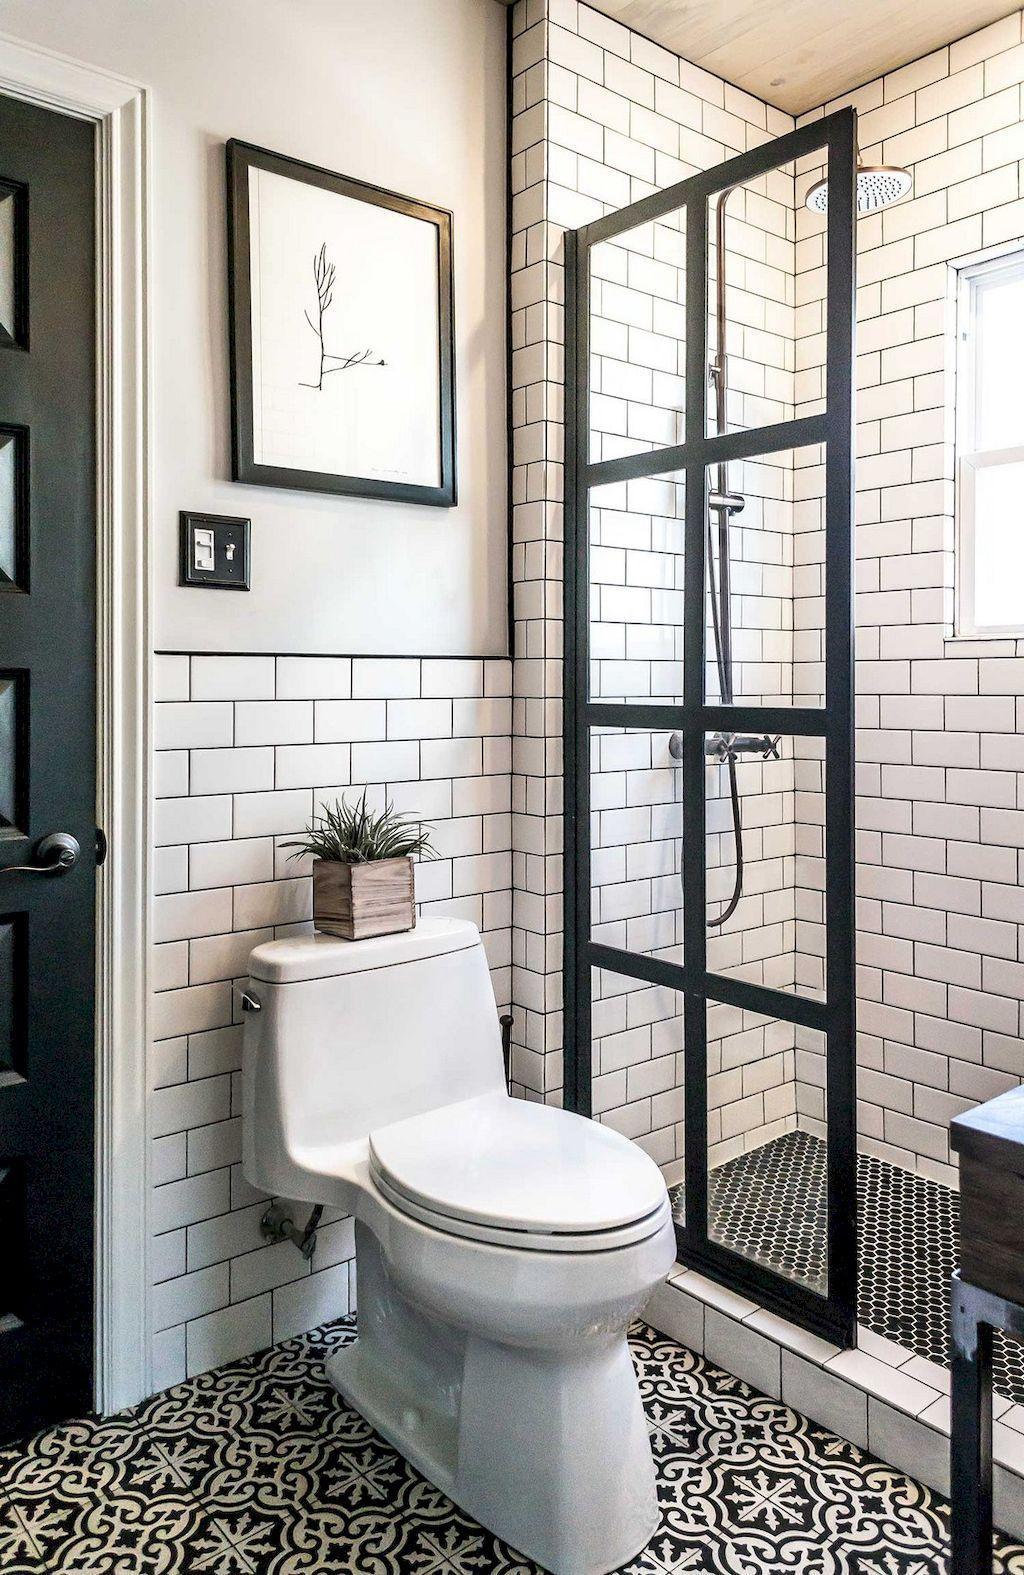 Cool Small Master Bathroom Remodel Ideas 1 Small Bathroom Remodel Bathroom Design Small Small Master Bathroom